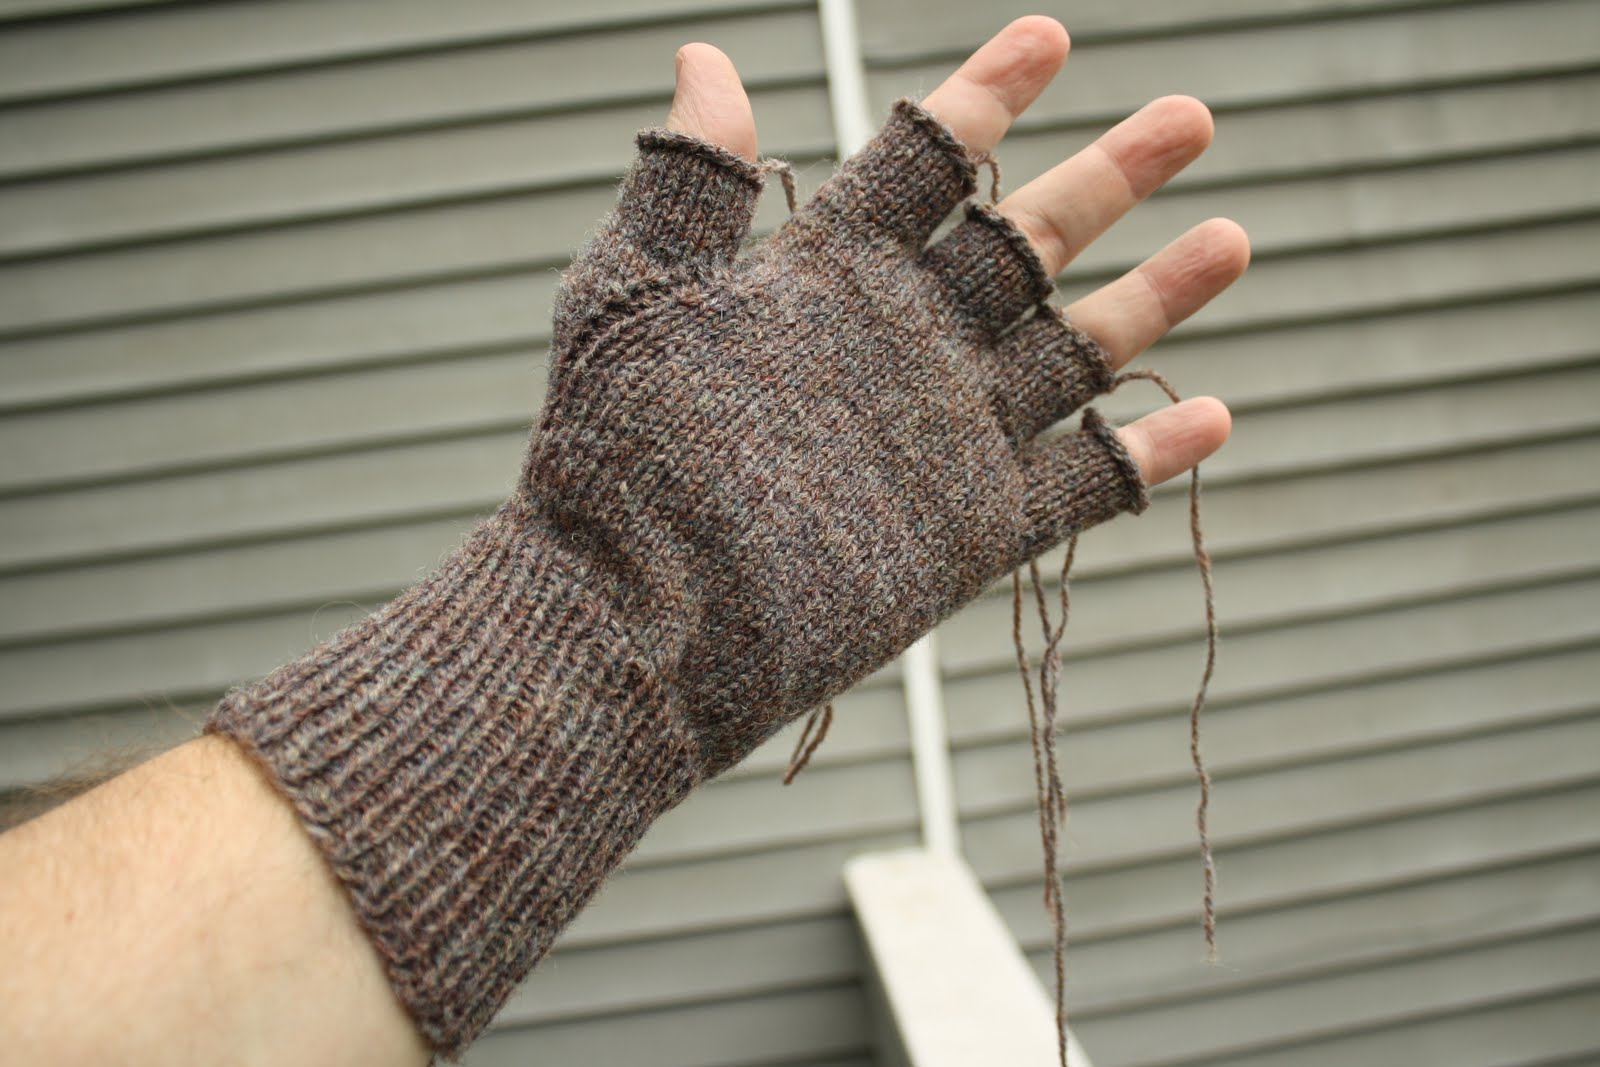 Knitting Patterns Free Fingerless Mittens : Fingerless Gloves Free Knitting Patterns Motorcycle ...